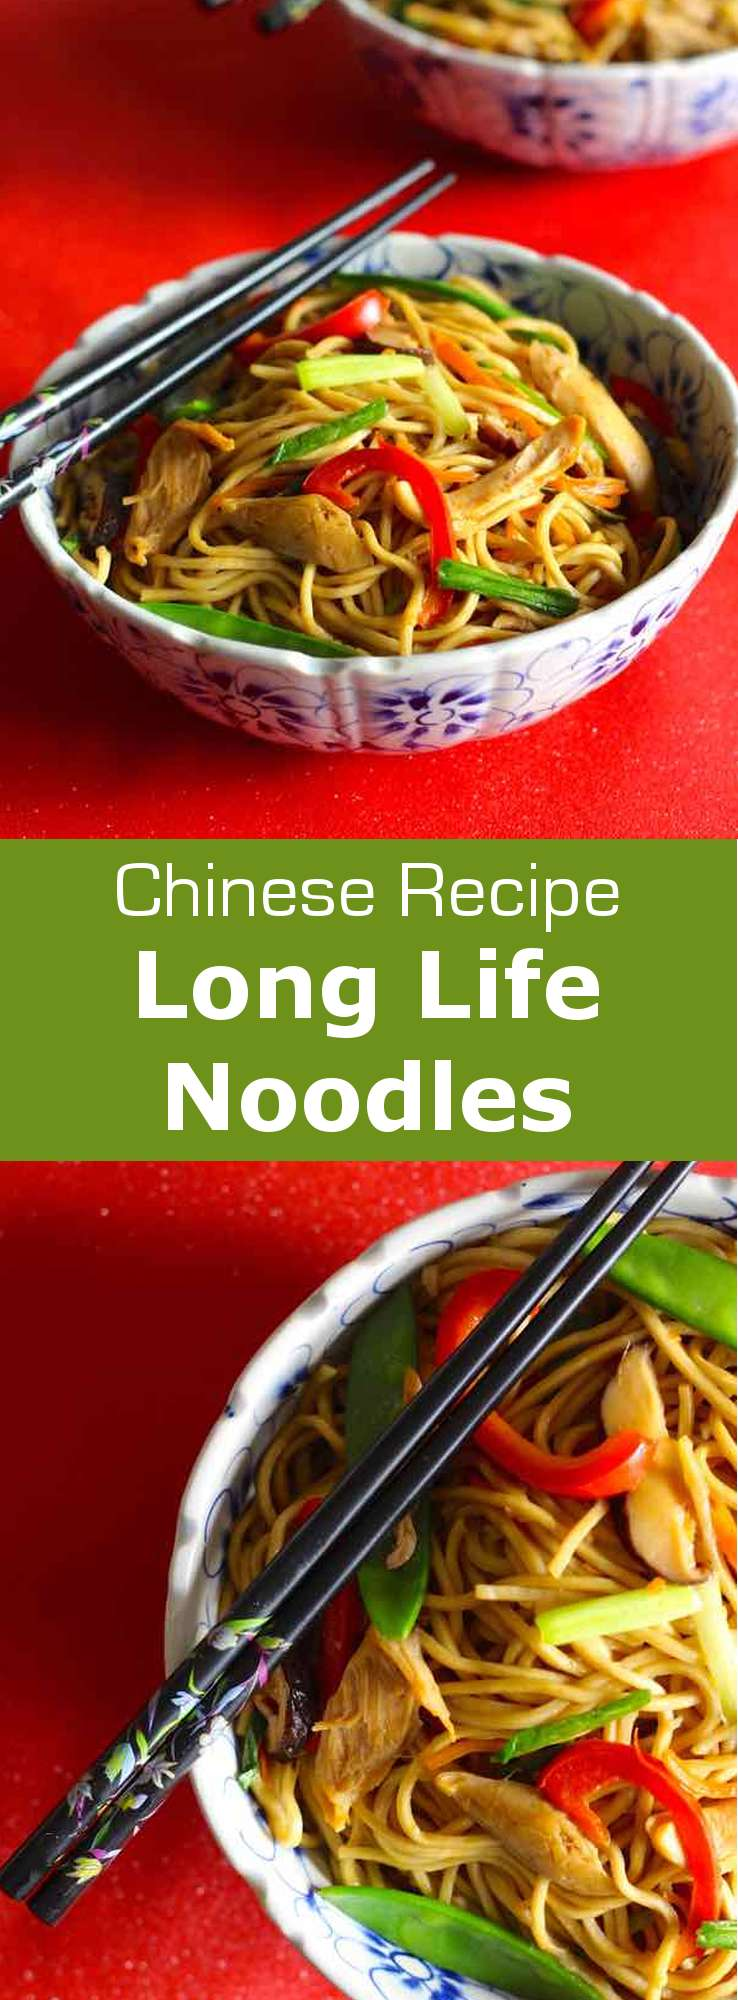 Long Life Noodles - Traditional Chinese Recipe | 196 flavors